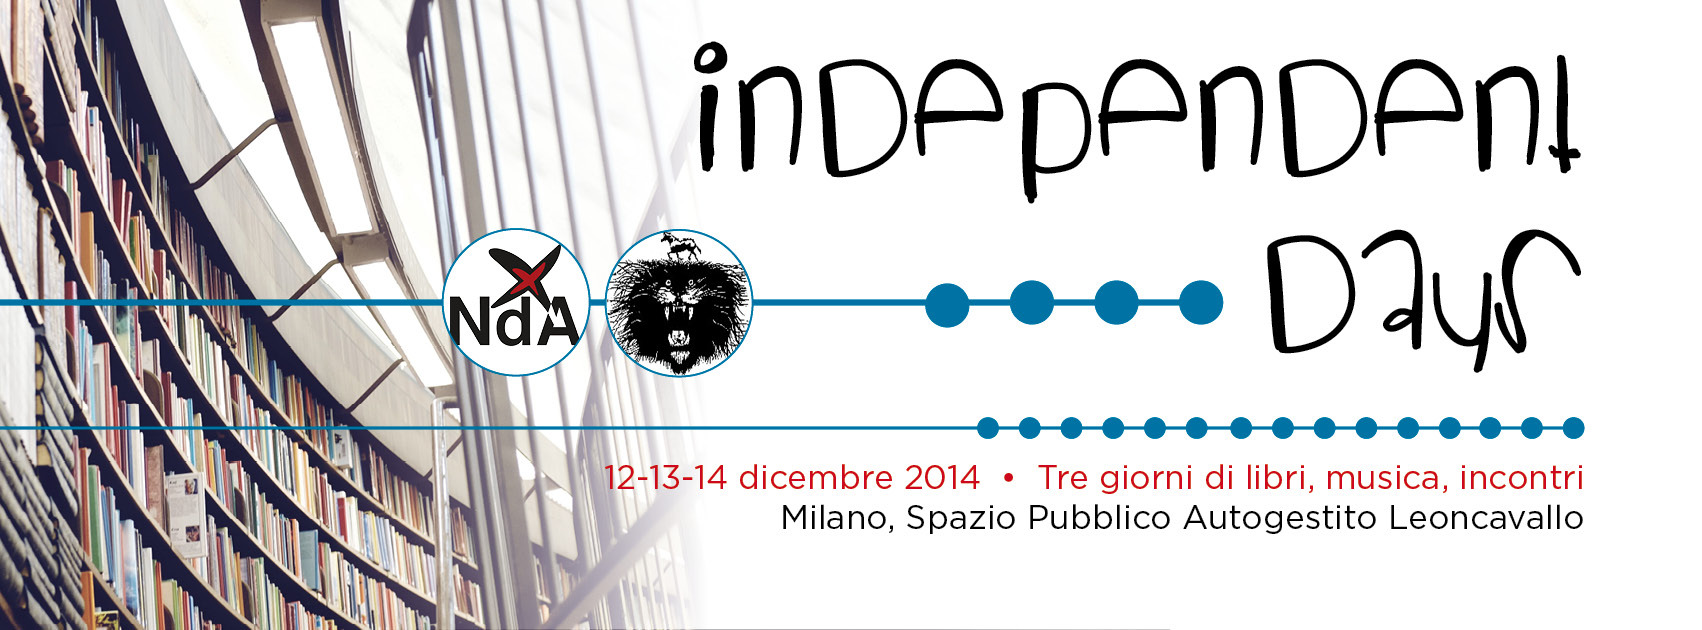 Coessenza all'Indipendent Day